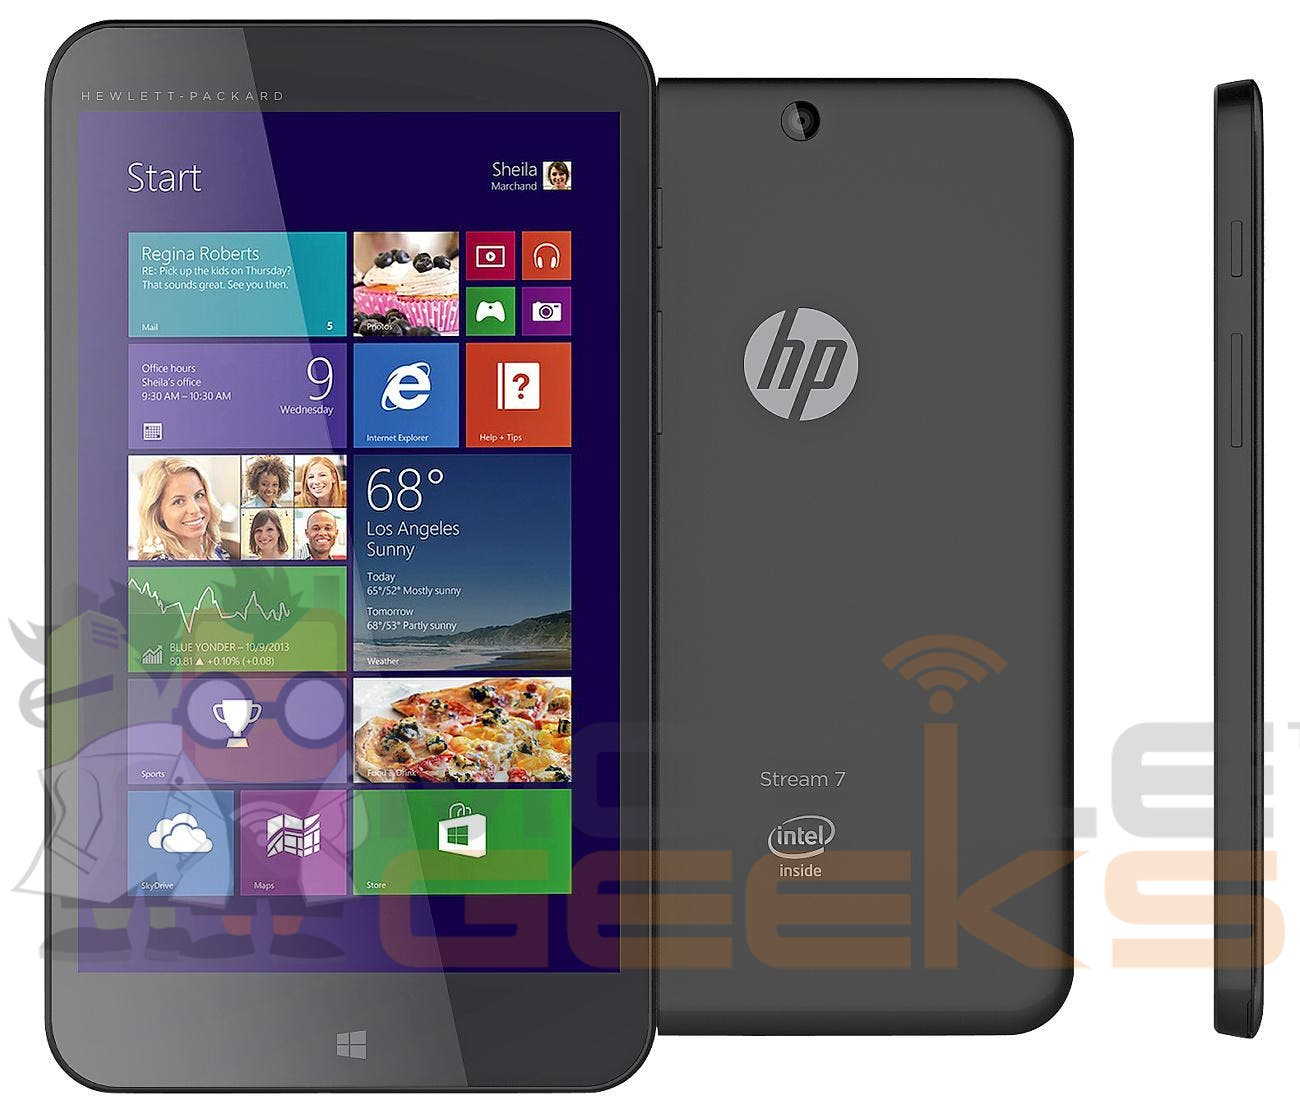 HP Stream 7 geleakt – Das erste Windows-8.1-Tablet mit 7-inch Display!